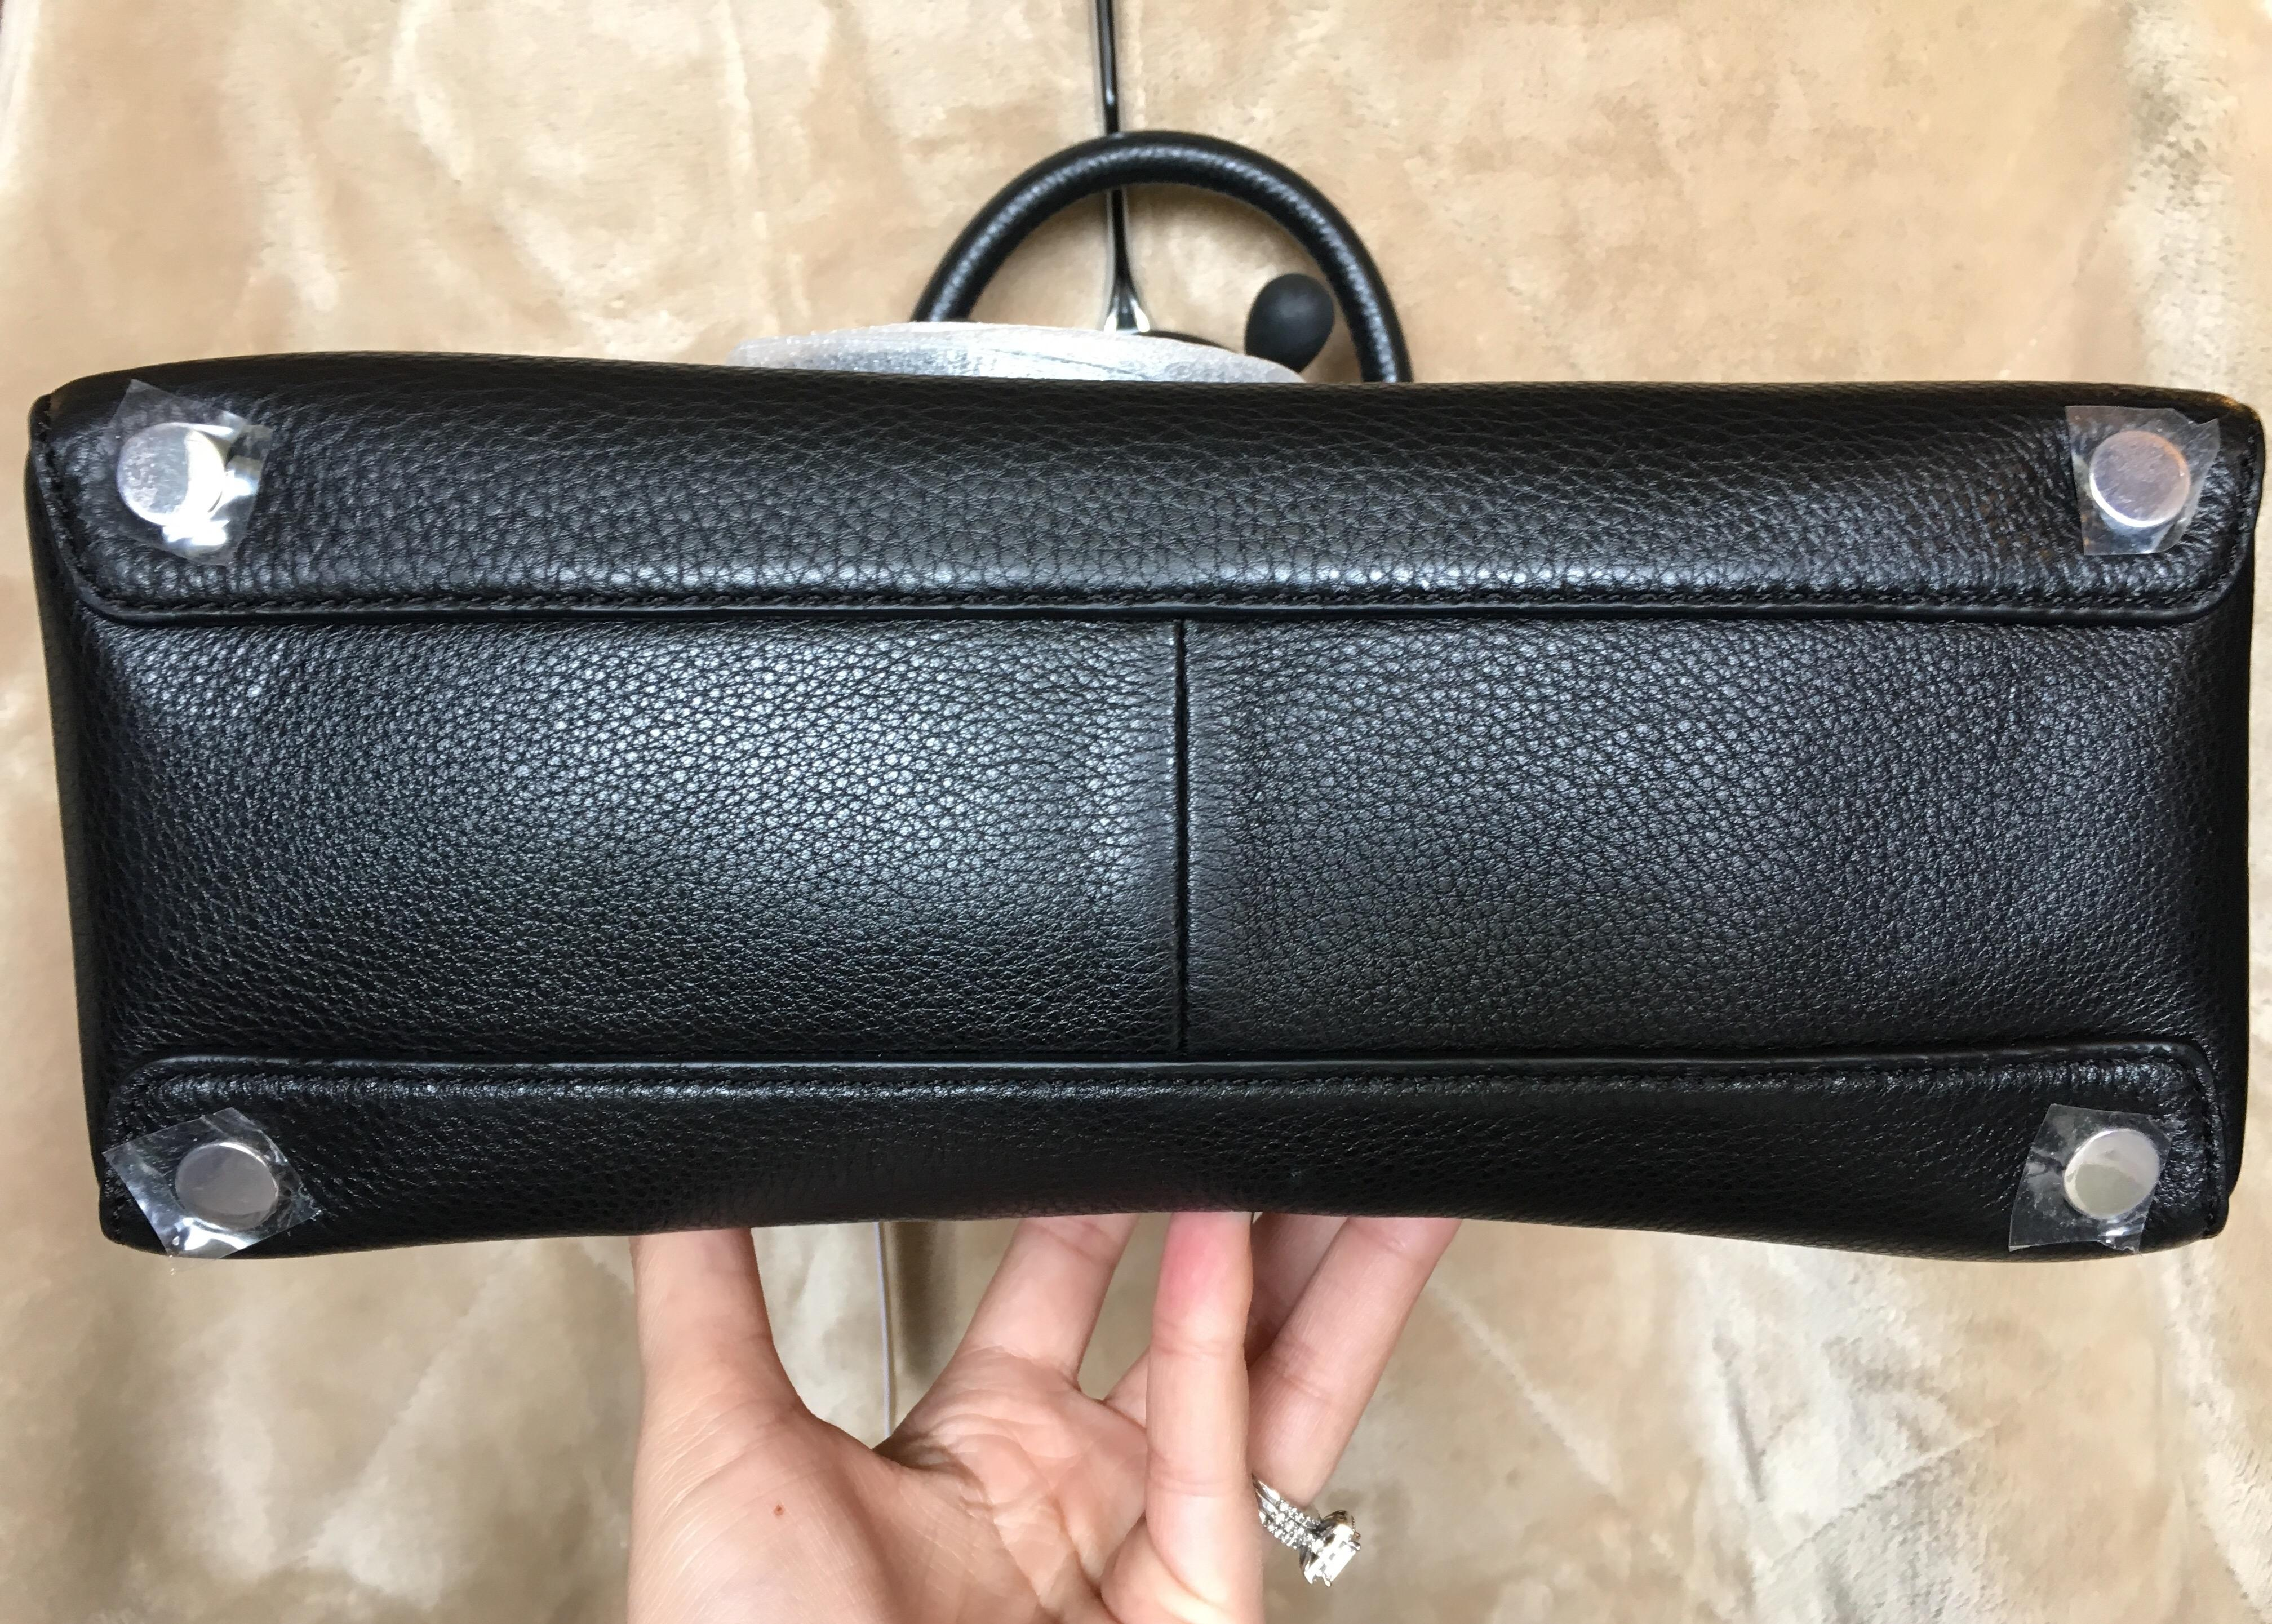 f99813ddfb7a94 ... best price michael kors save camille medium black silver leather  satchel tradesy 7507f 86af5